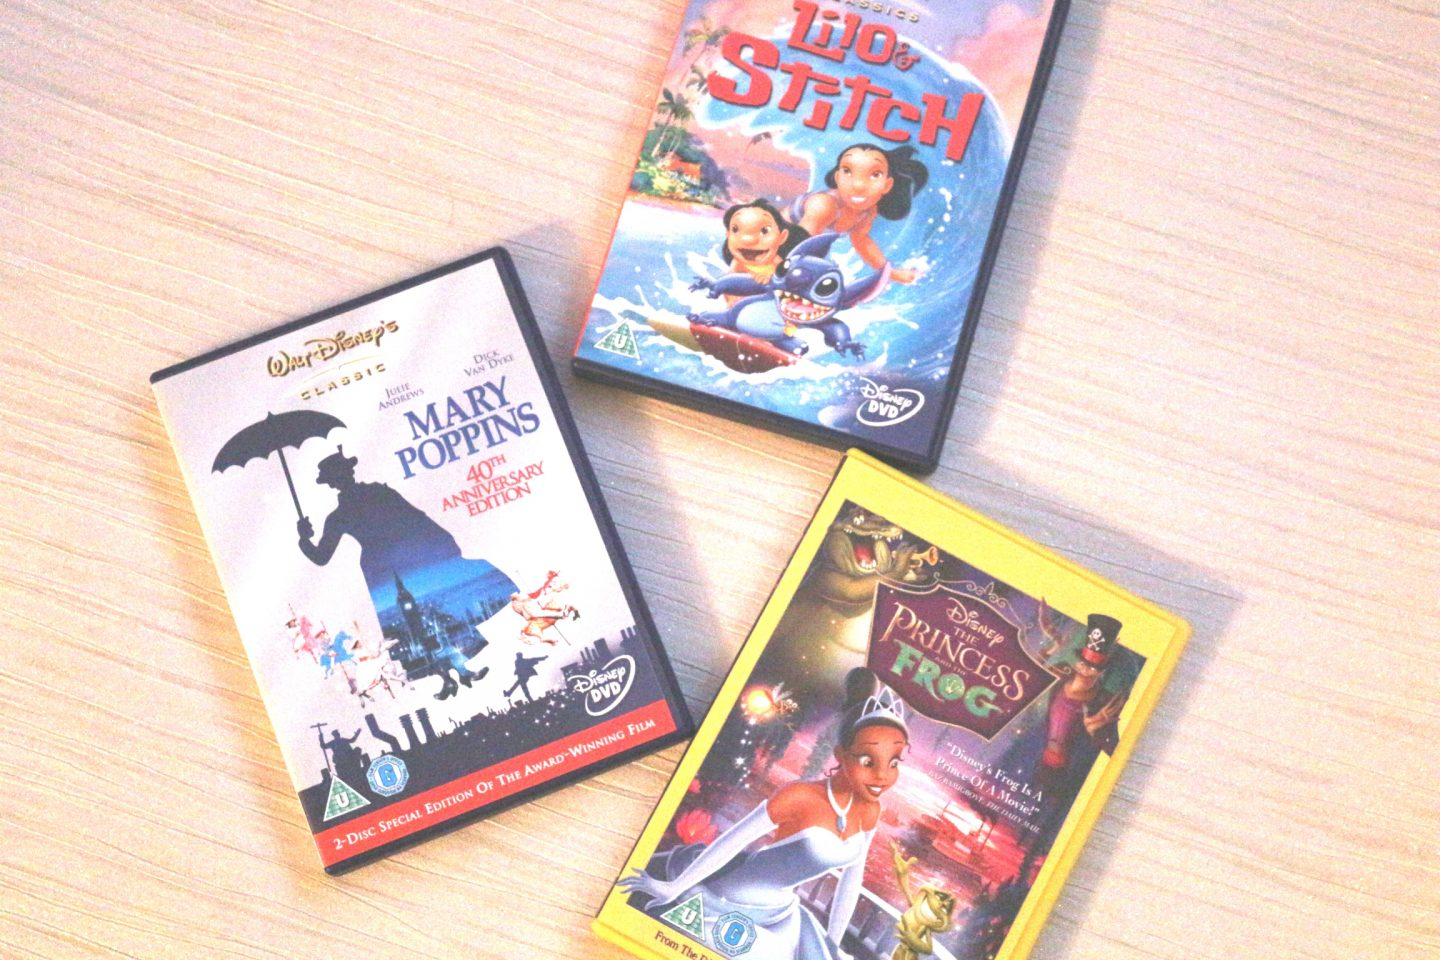 disney films disney movies walt disney princess and the front lilo and stitch mary poppins